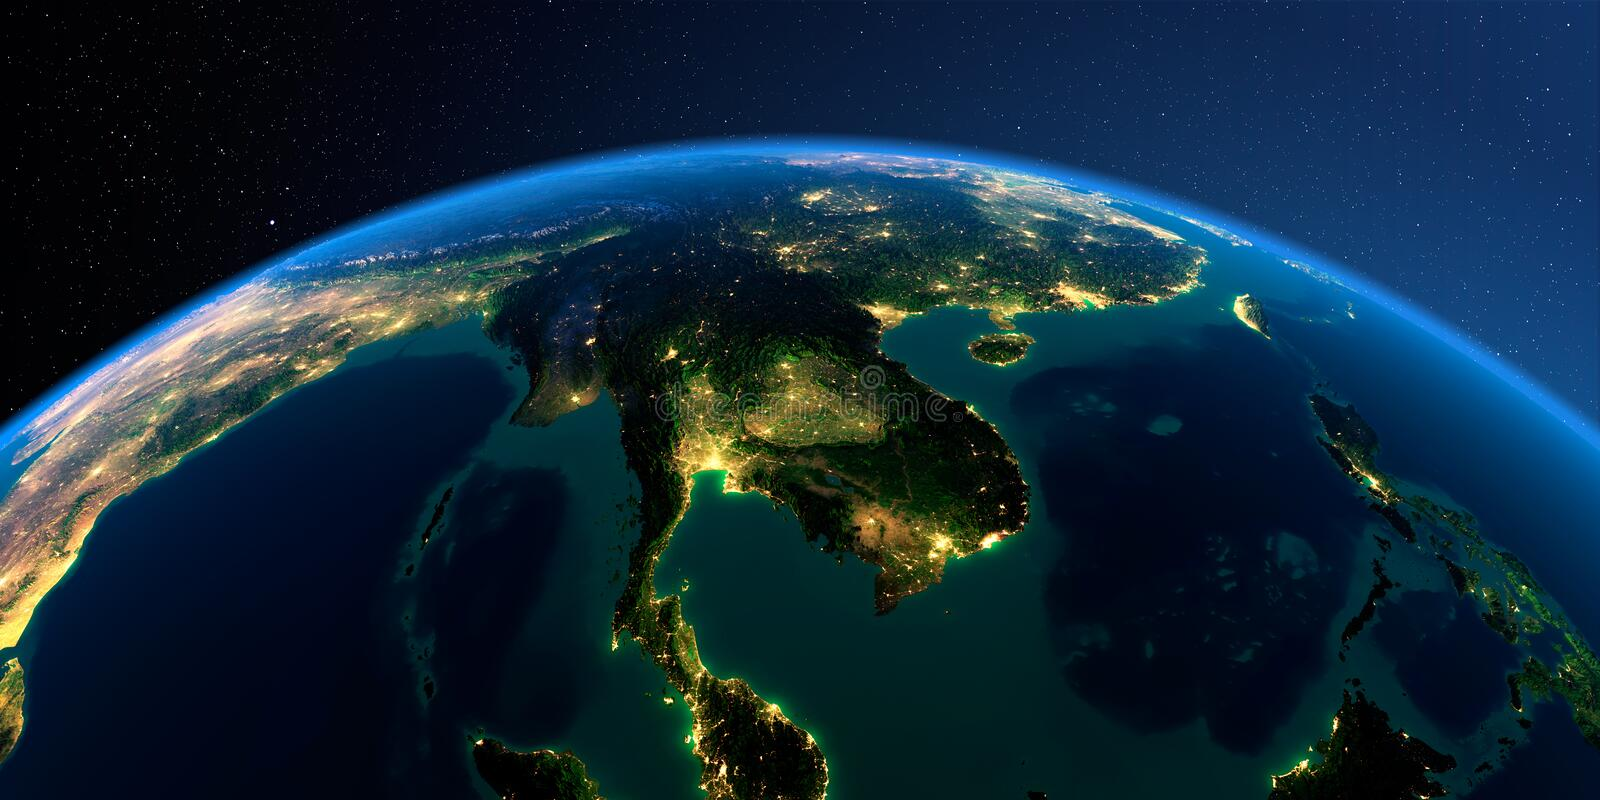 Detailed Earth. Indochina peninsula on a moonlit night vector illustration